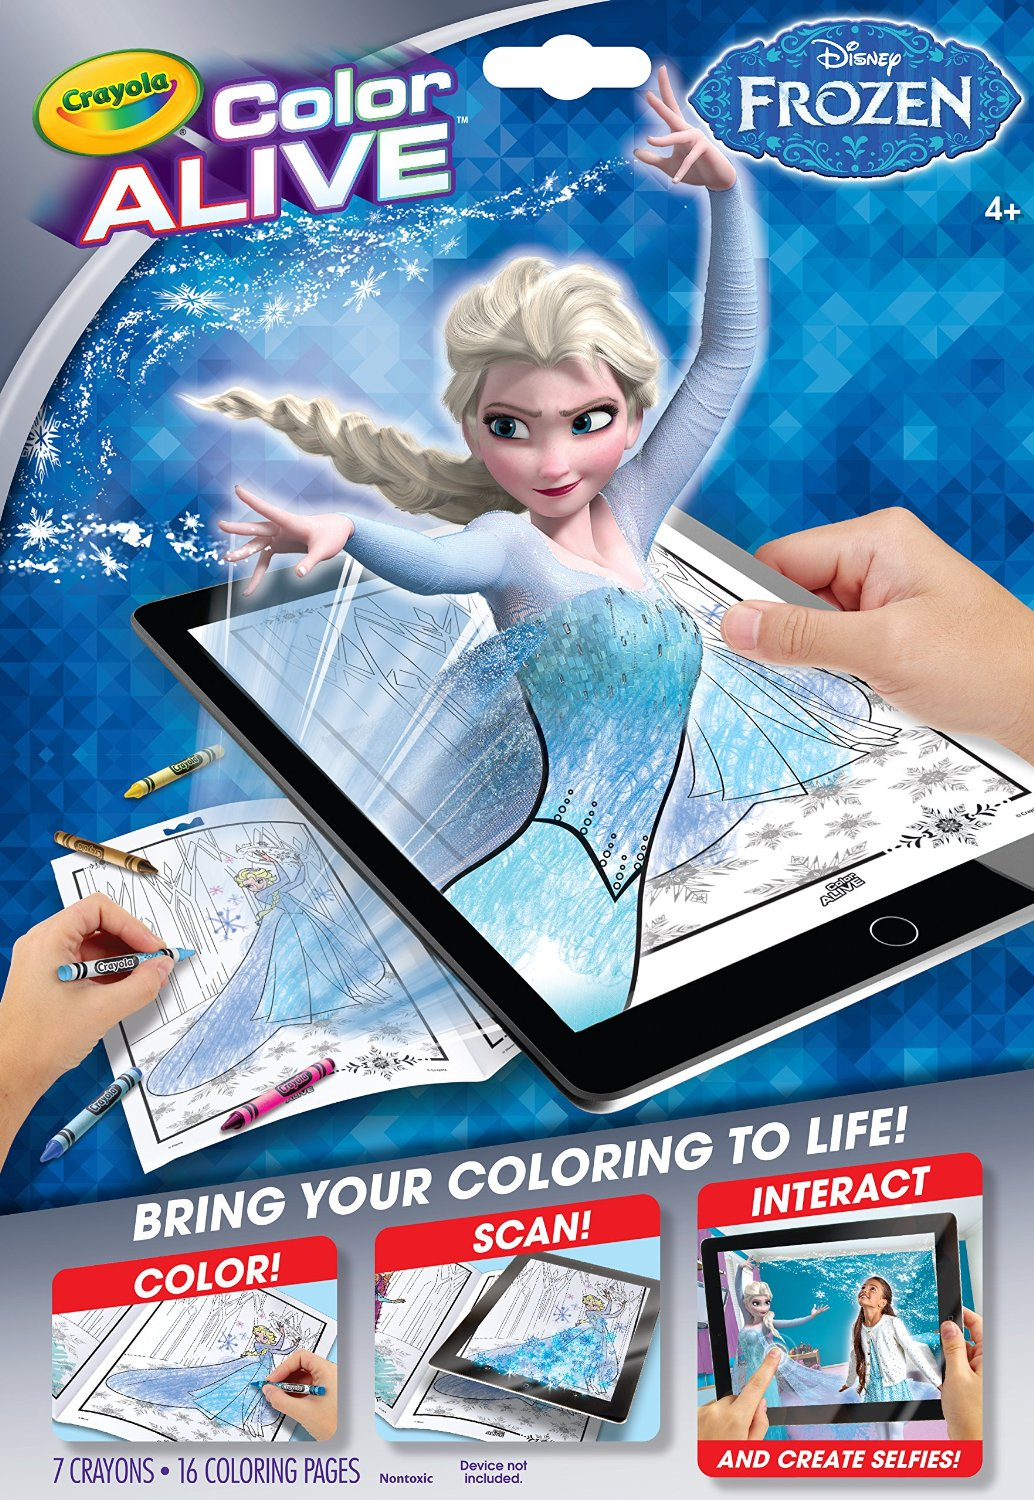 New Crayola S Color Alive Frozen And Star Wars Virtual Design Pro Just In Time For Easter Night Helper